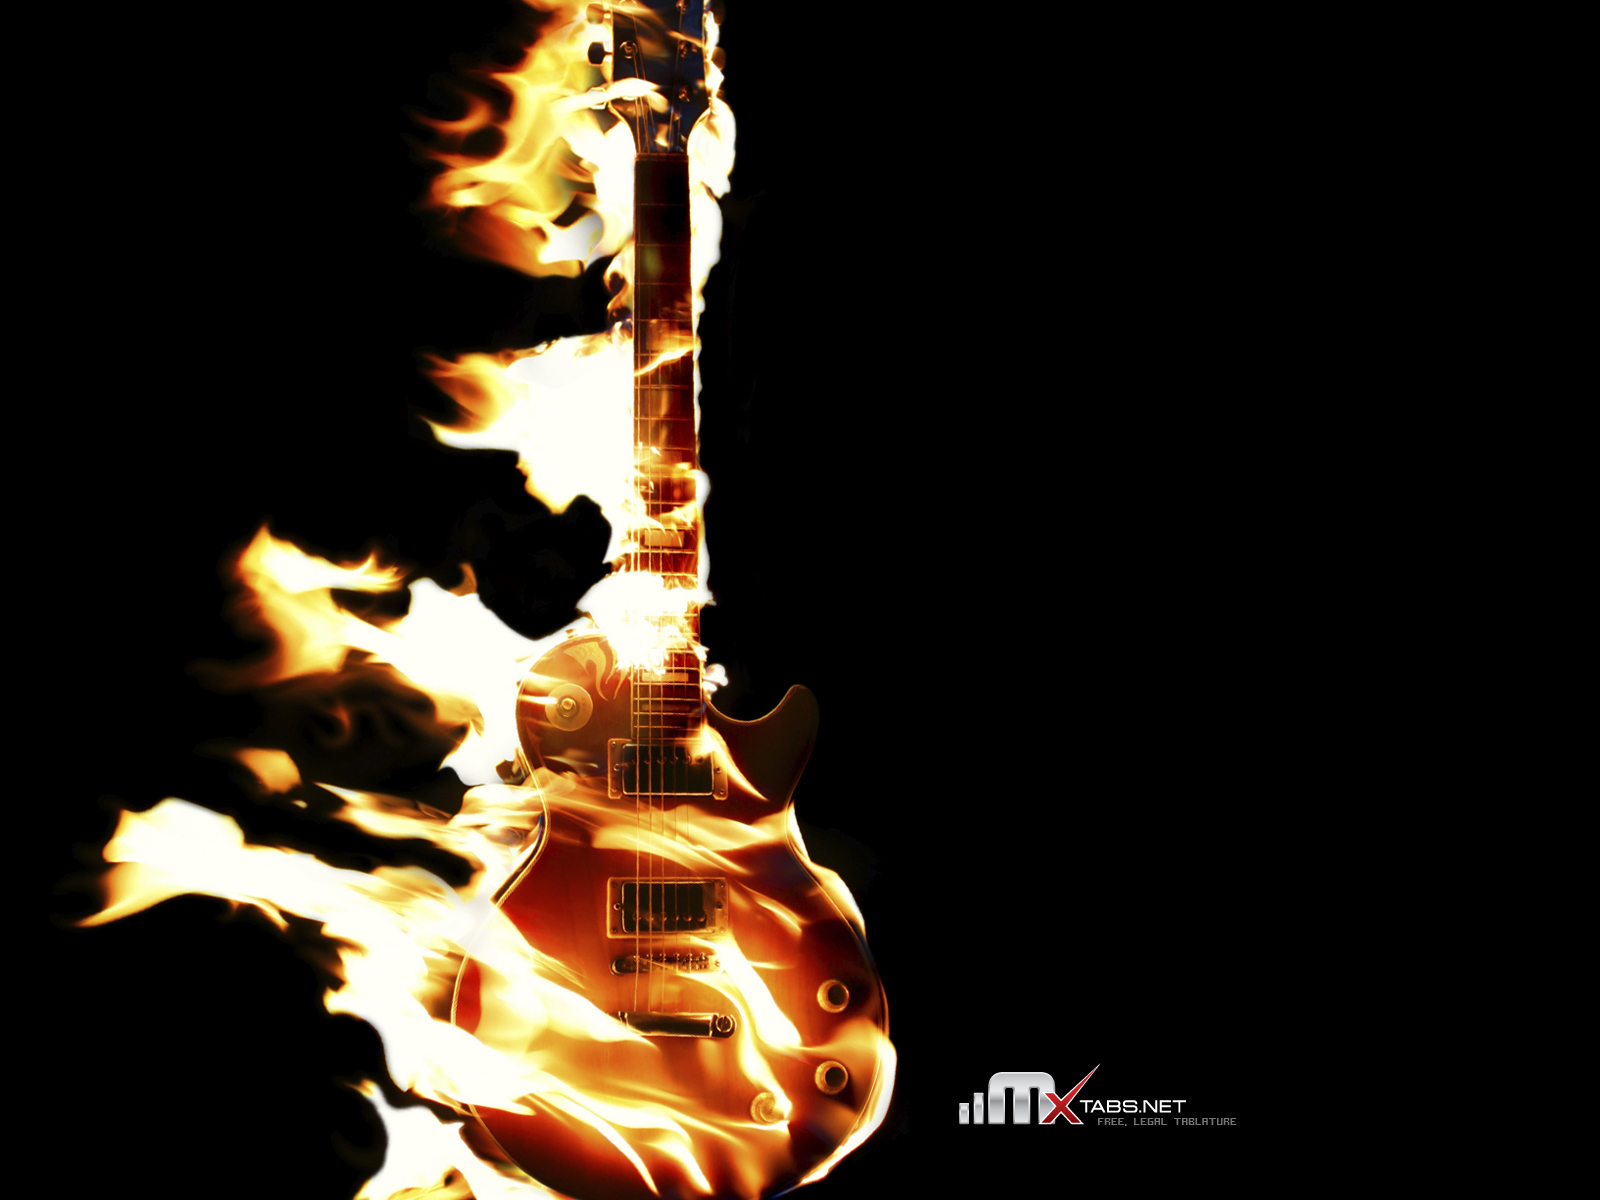 Wallpapers   Musica Guitarra RockNRoll Wallpapers 1600x1200